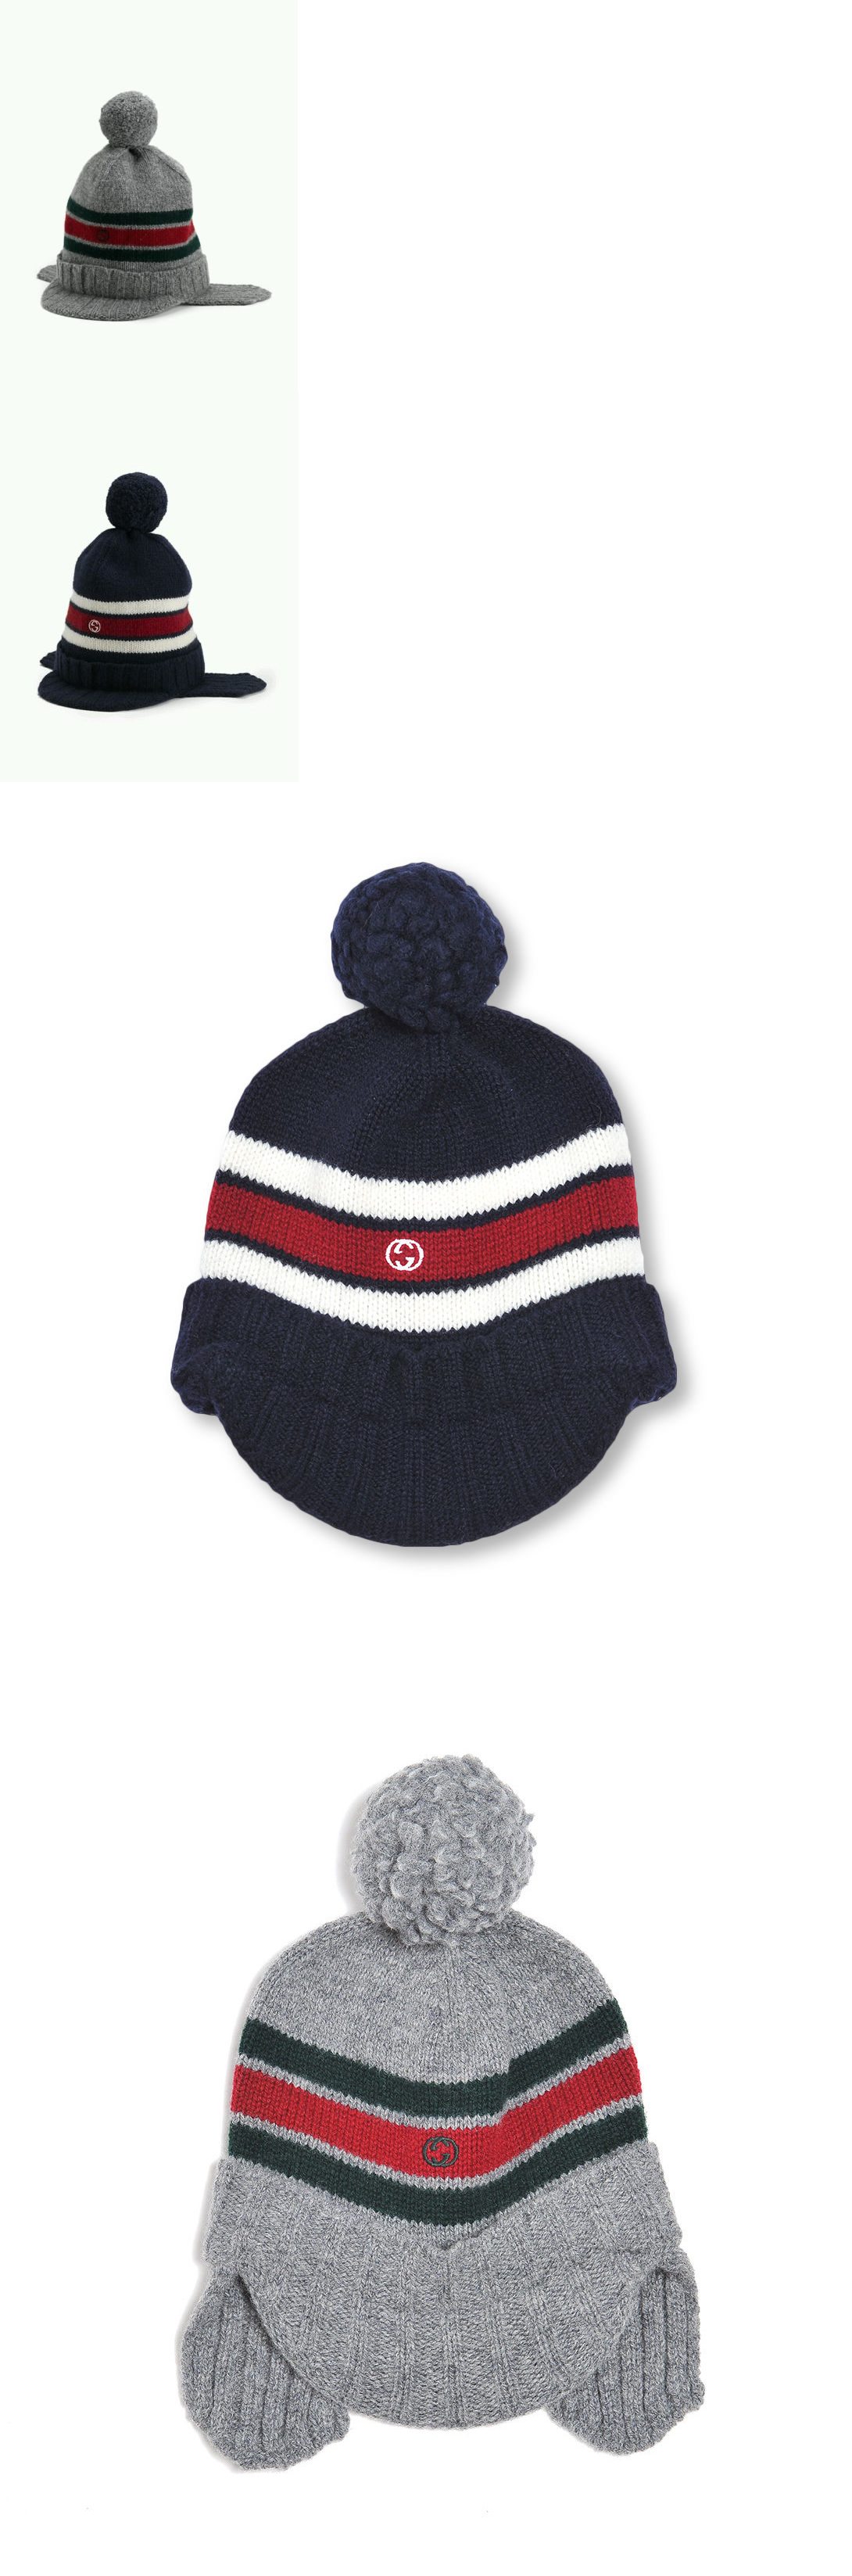 e2dfe56c2ca Hats 57884  Nwt New Gucci Kids Boys Navy Or Gray Wool Knit Hat Ear Flaps  Red Web S 269511 -  BUY IT NOW ONLY   99 on eBay!